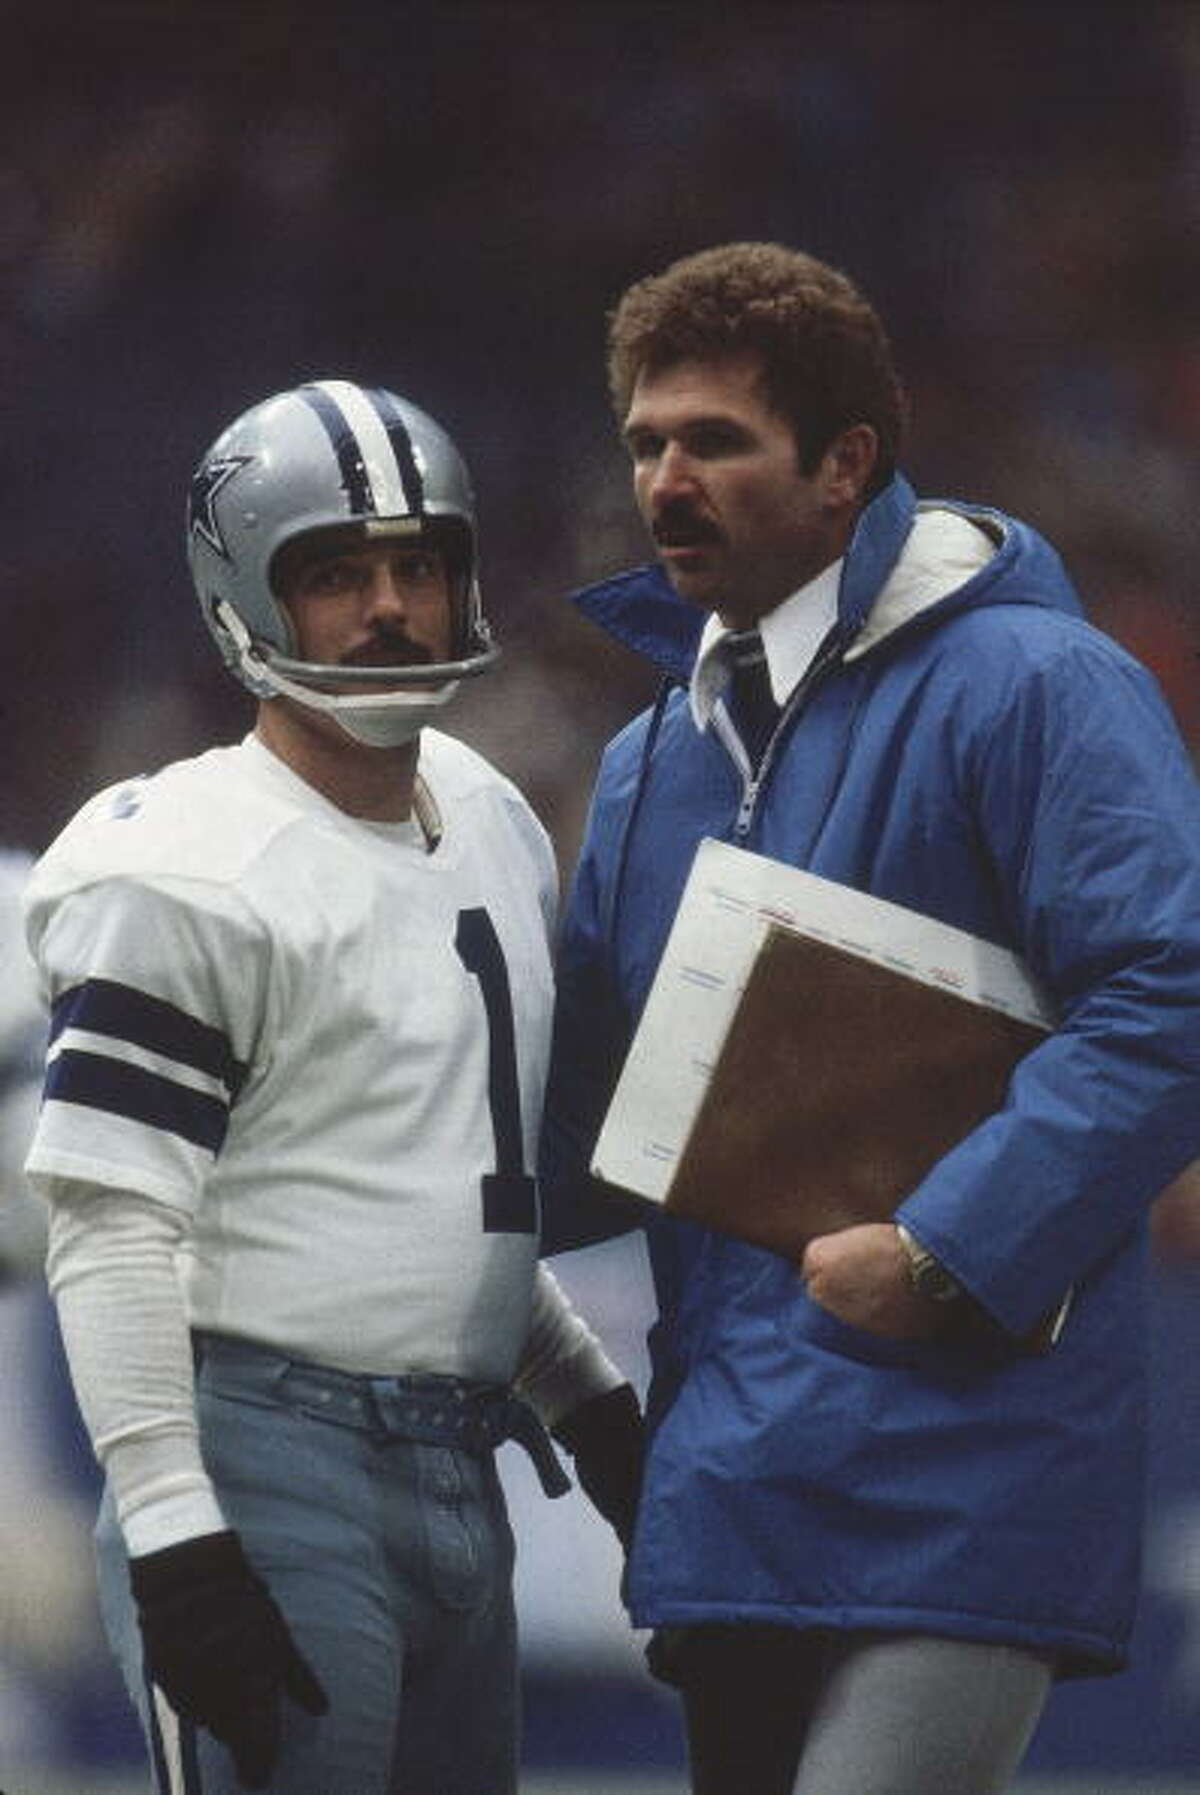 2. Rafael Septien (1978-86) An All-Pro kicker, Spetien was released by the Dallas Cowboys in 1987 after pleading guilty to indecency with a ten-year-old girl. He never played professional football again.